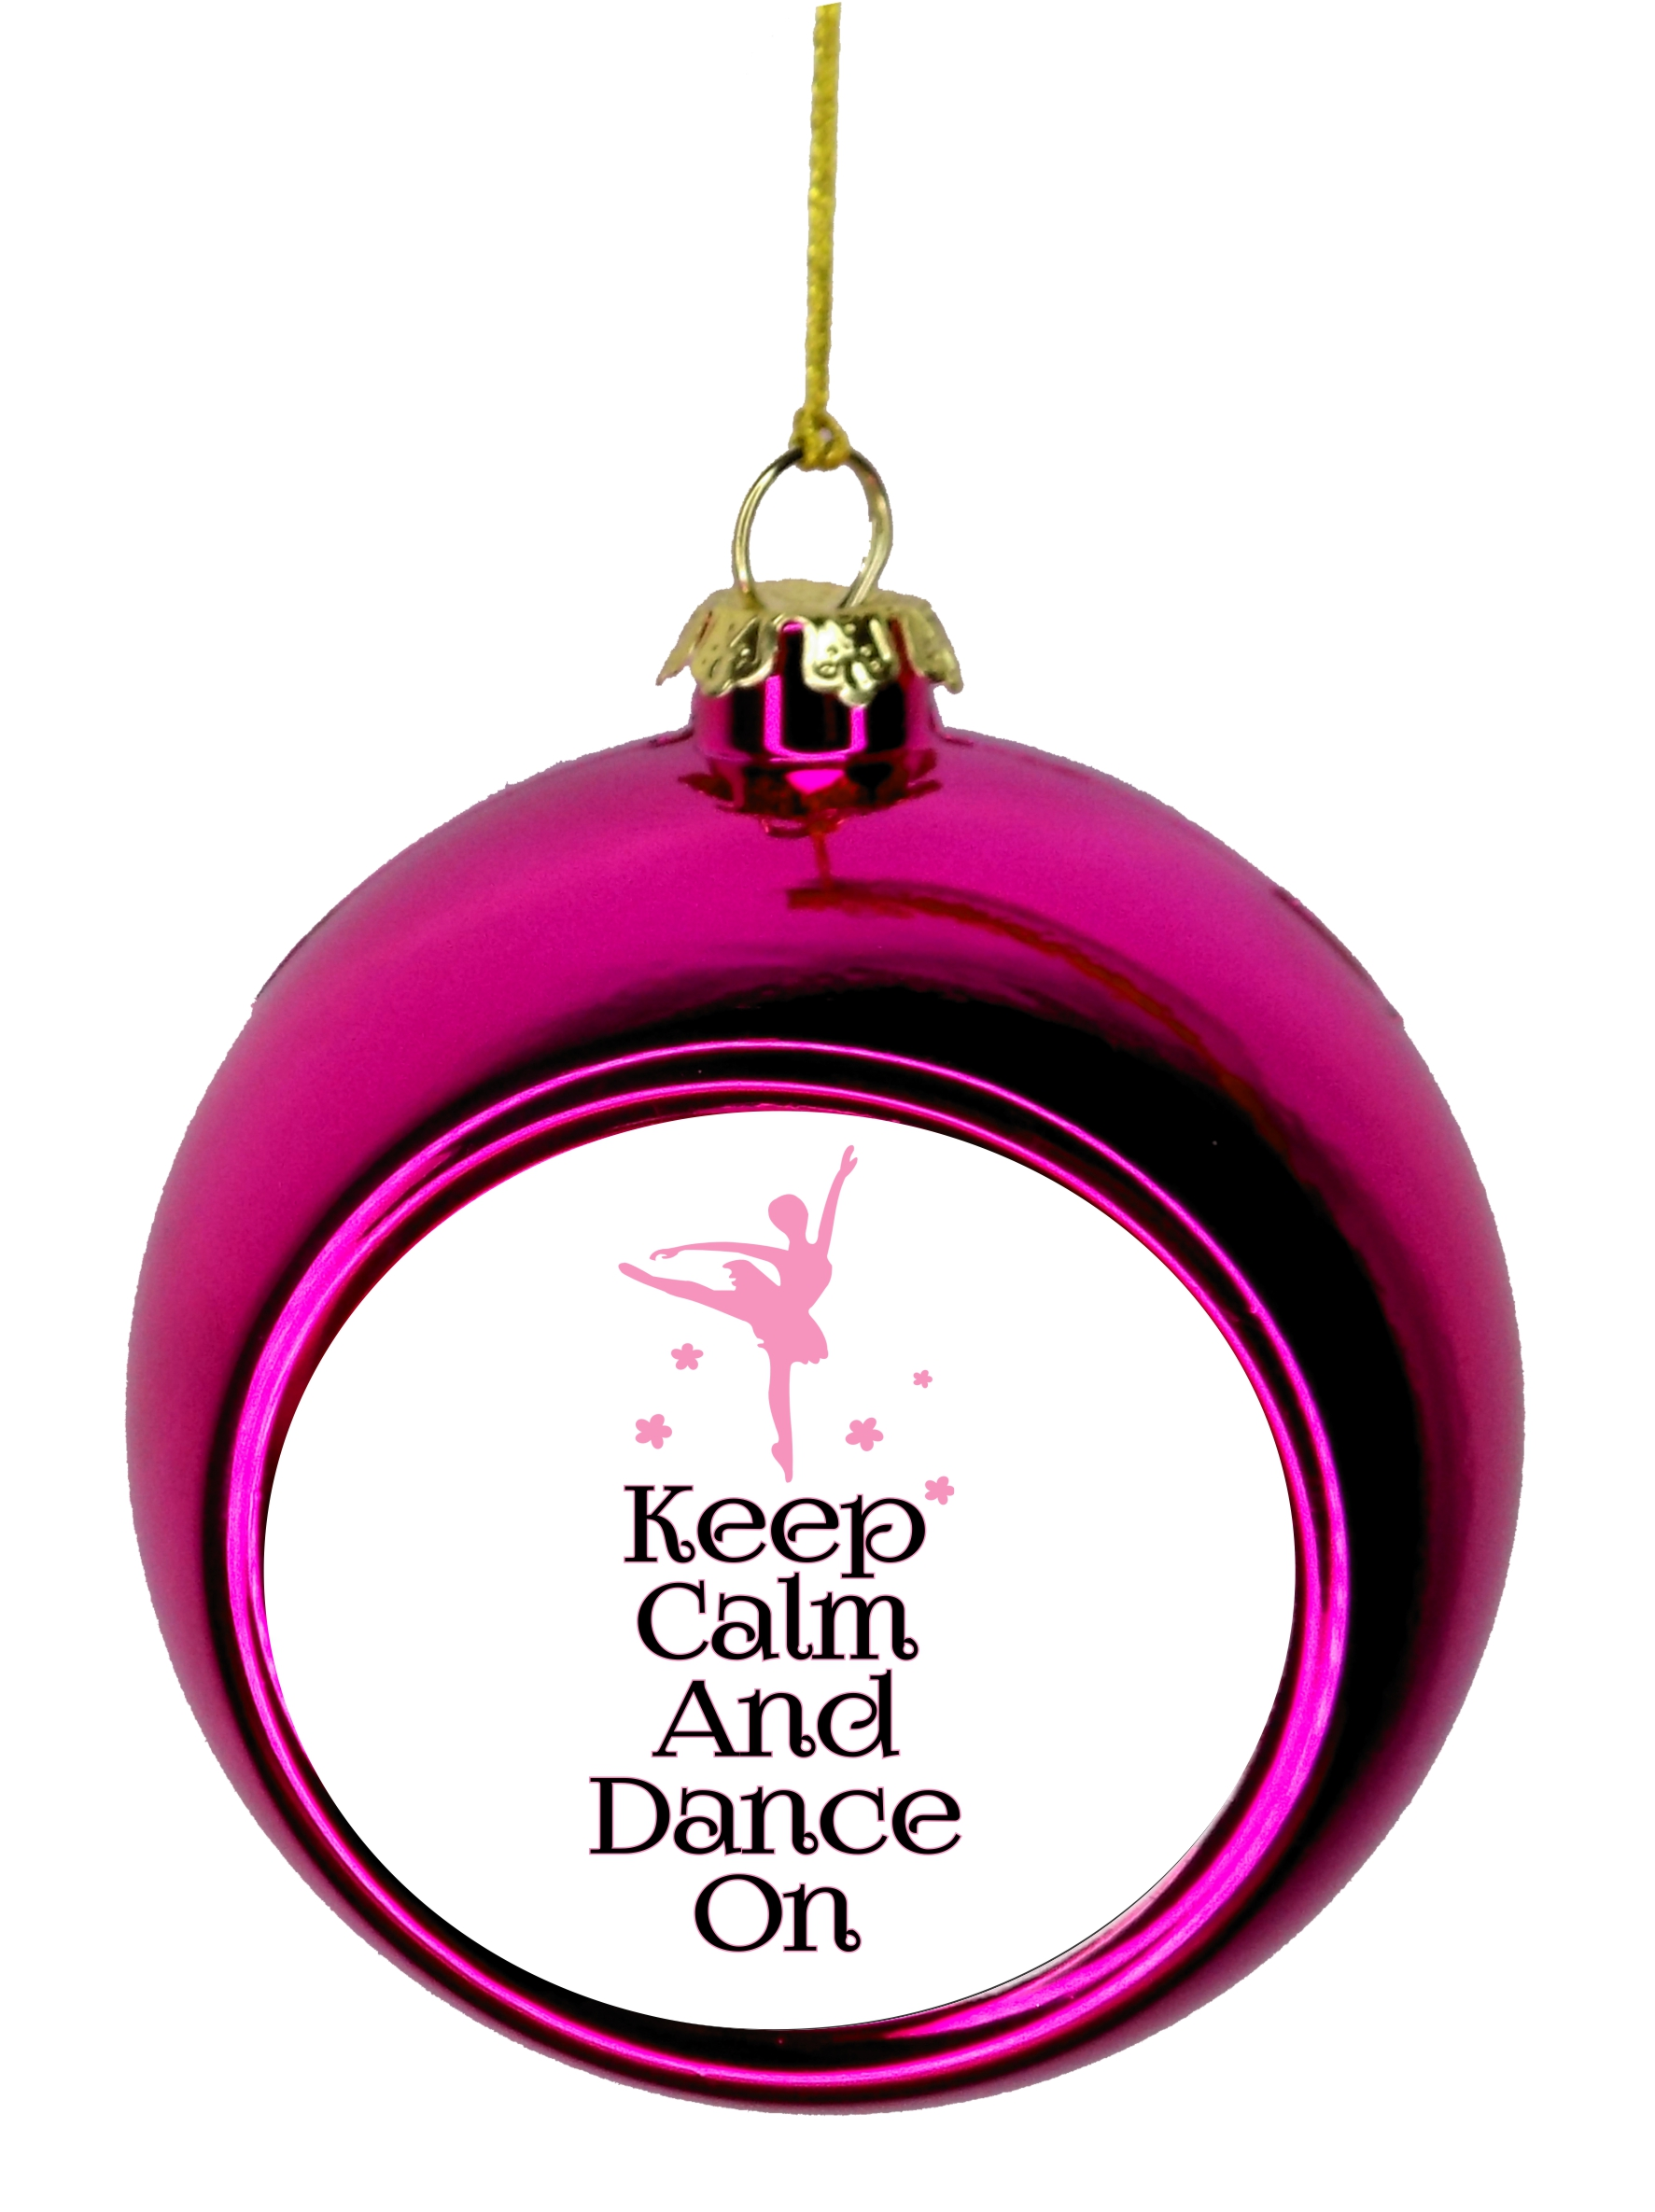 Keep Calm And Dance On Ballerina Dancer Bauble Christmas Ornaments Pink Bauble Tree Xmas Balls